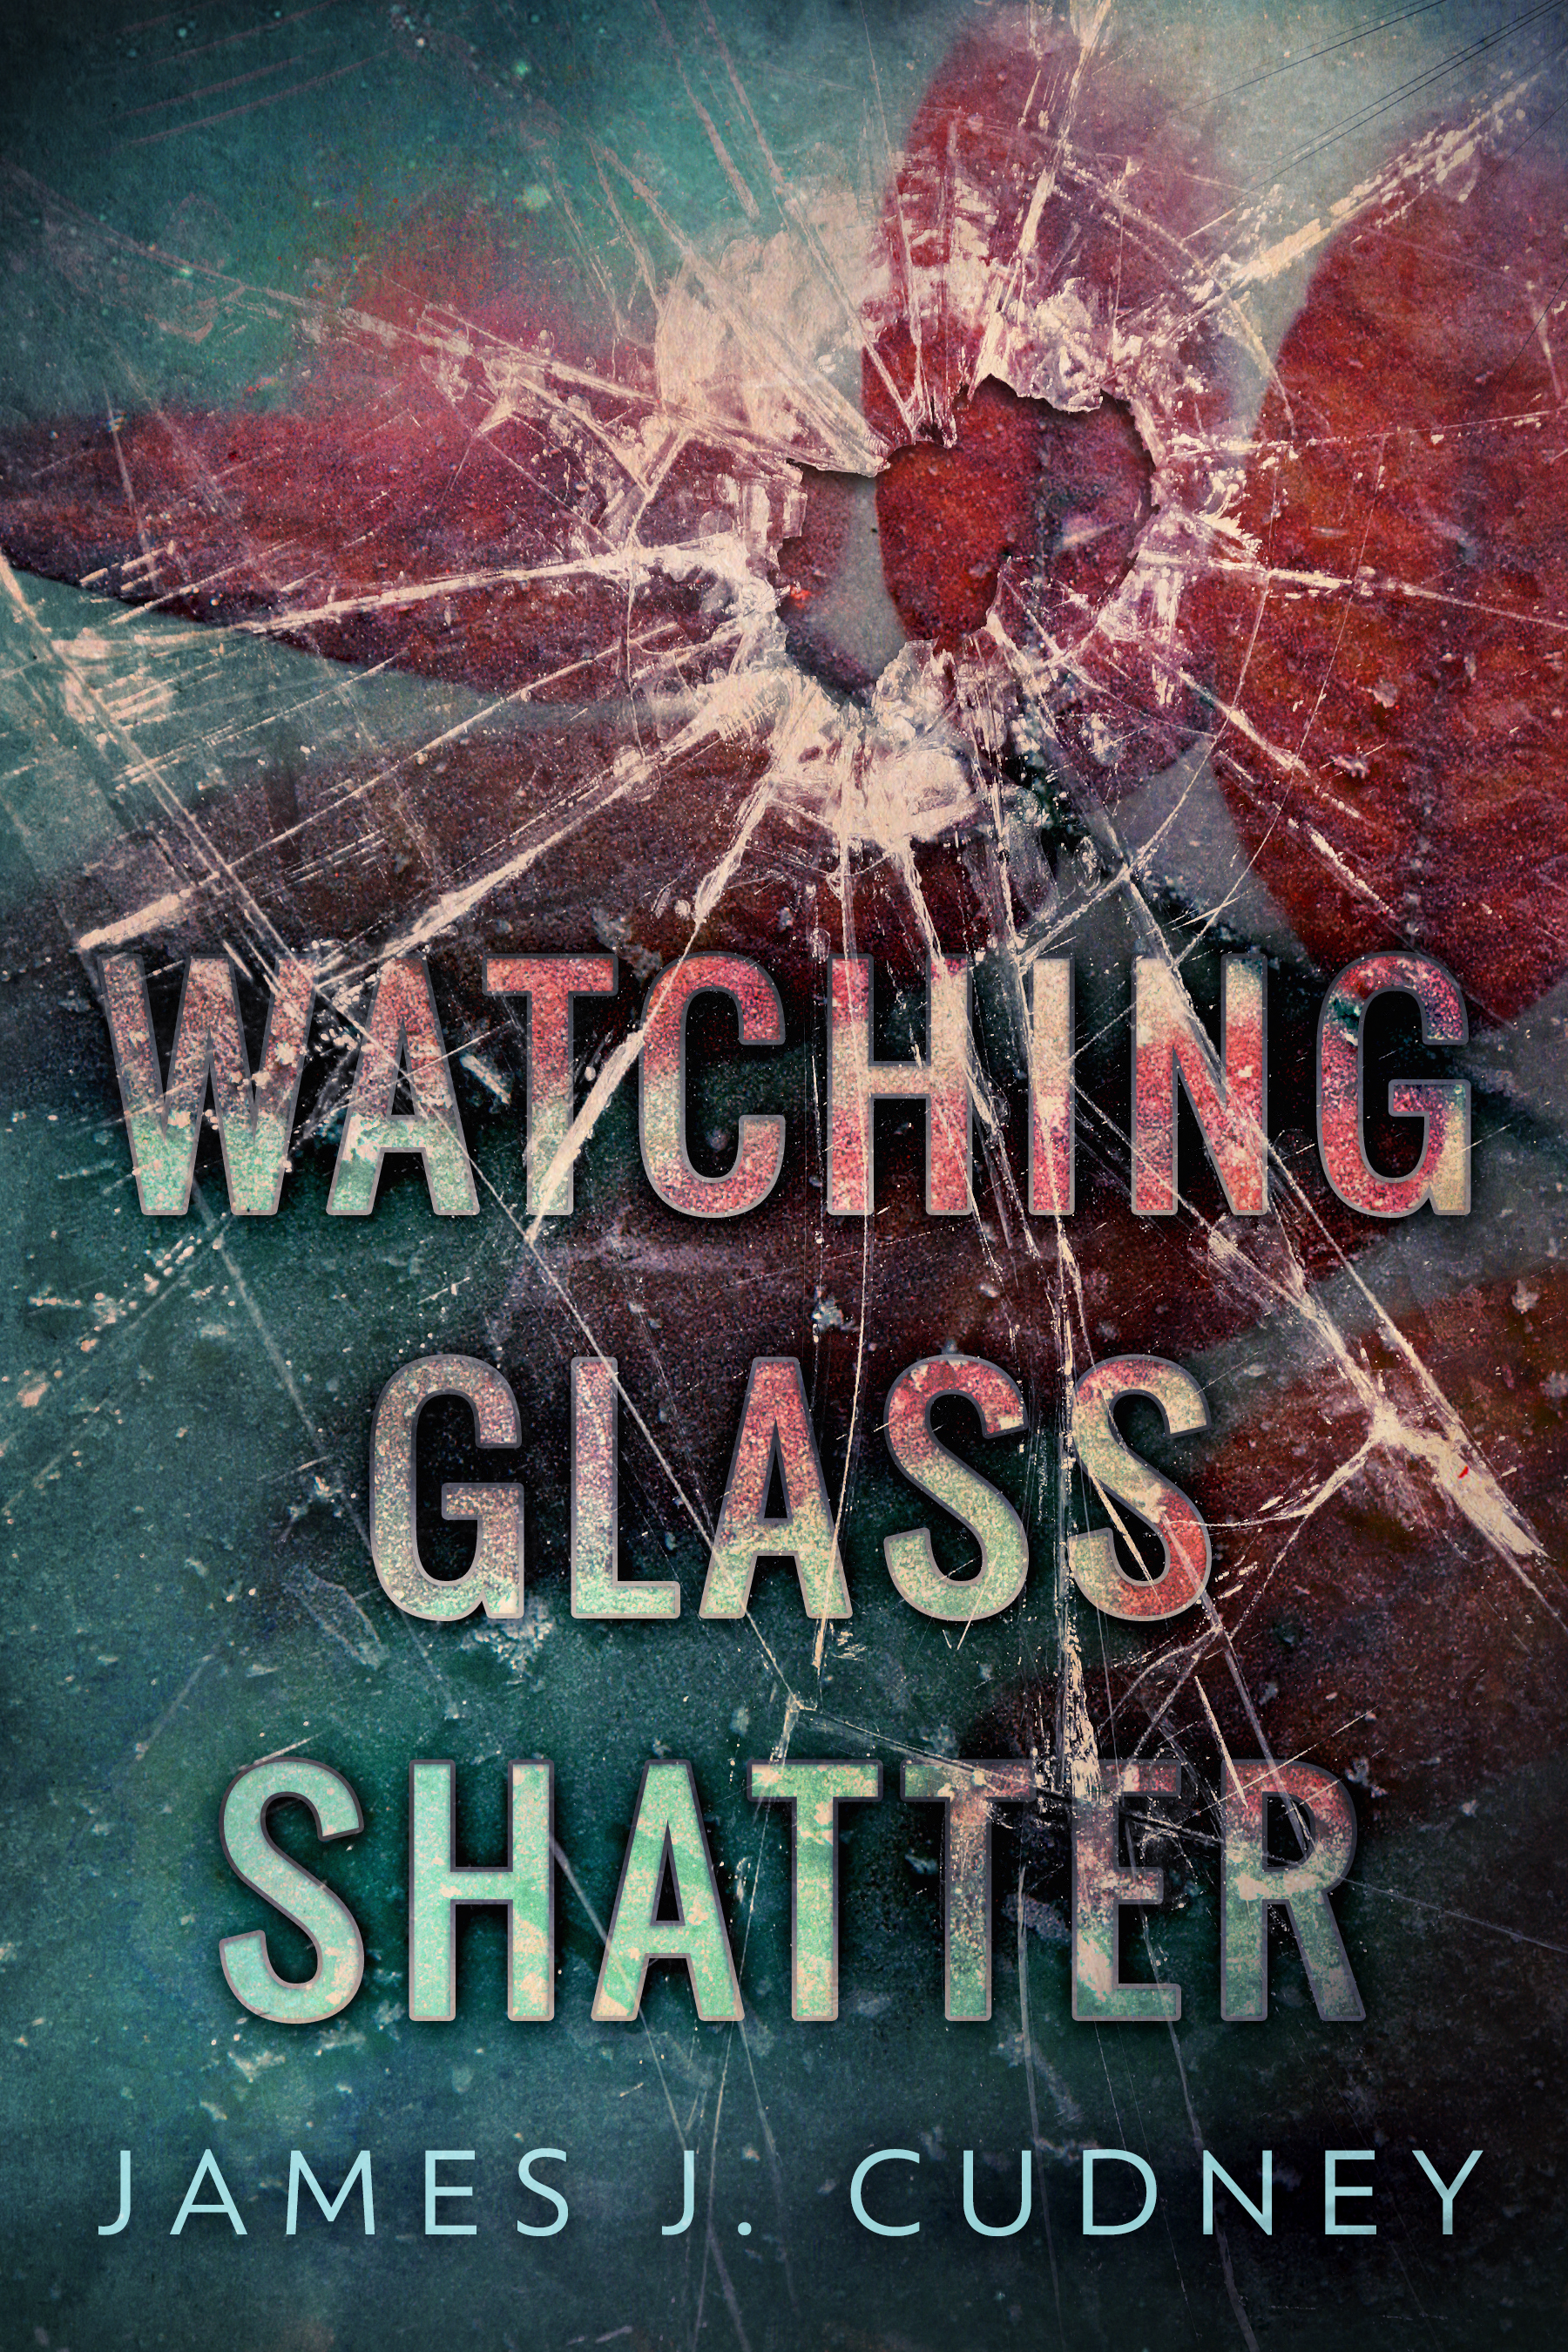 Cudney - Watching Glass Shatter